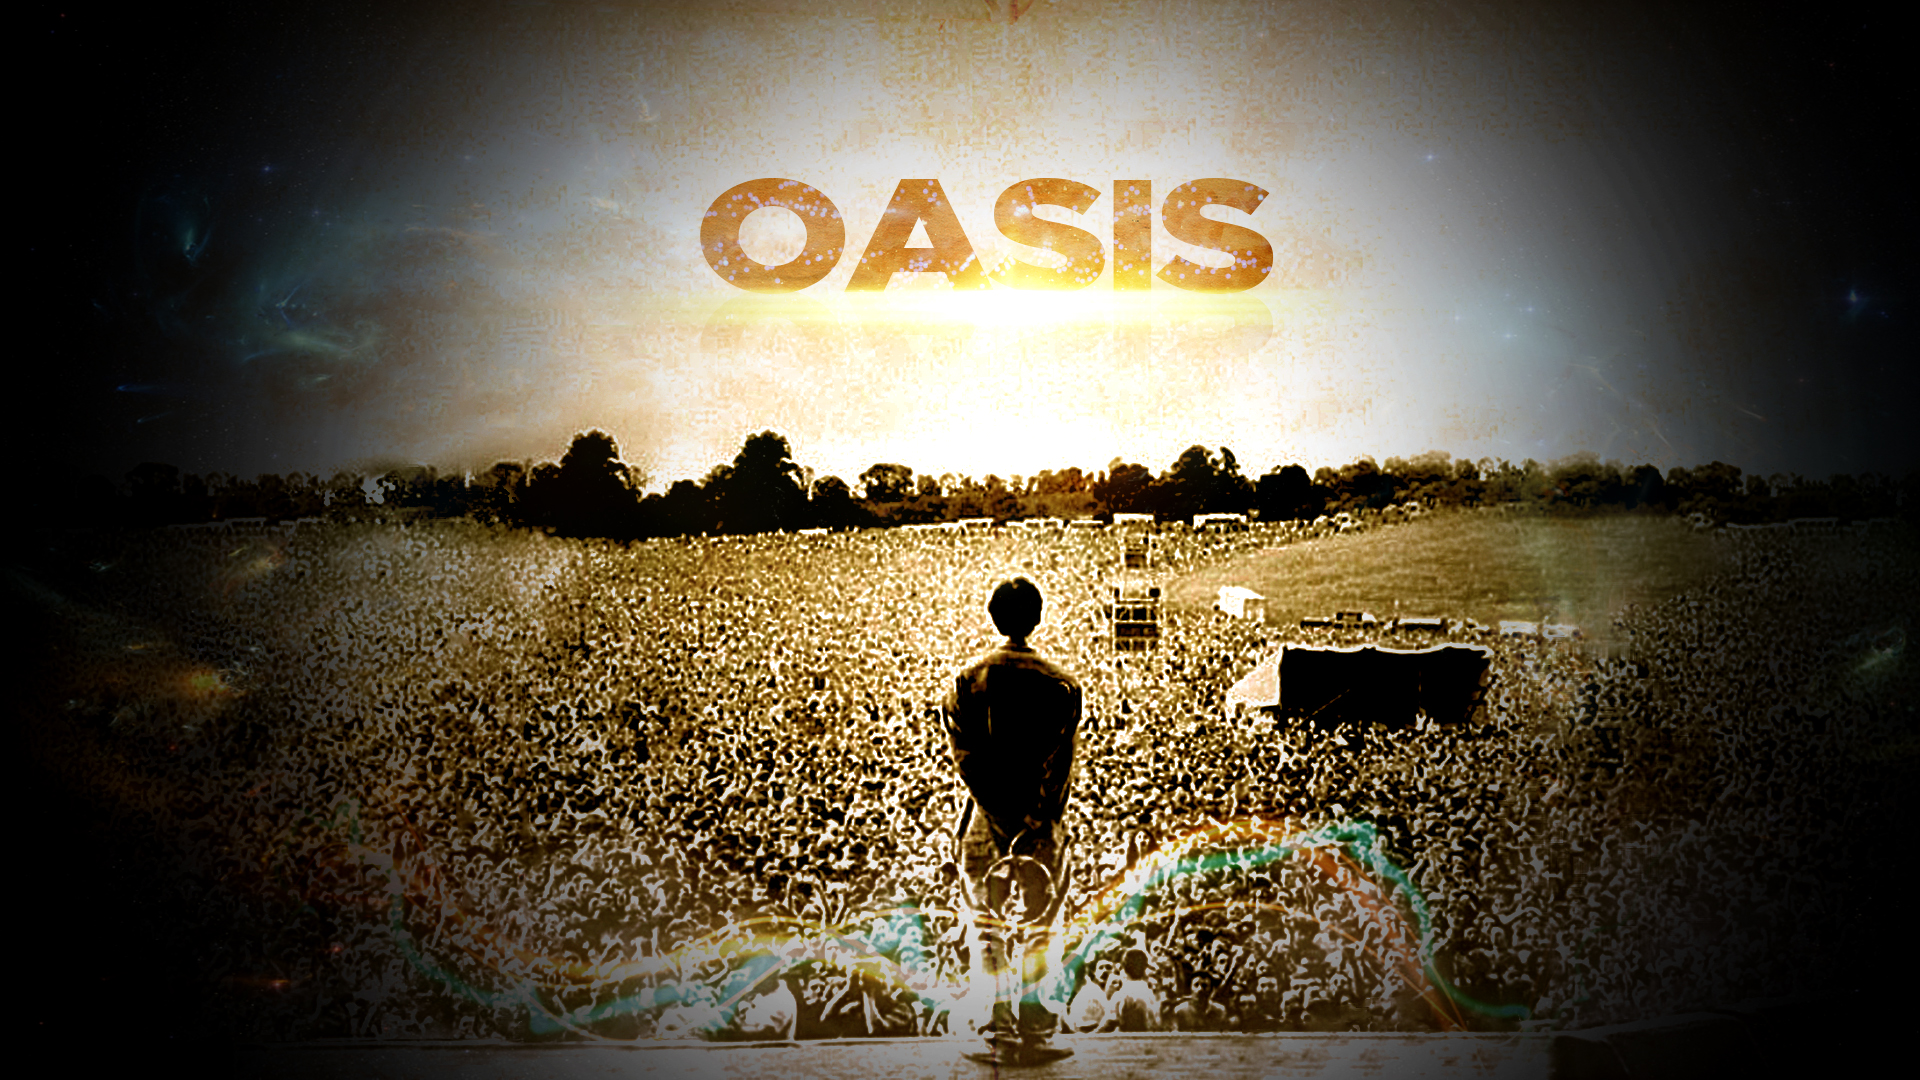 Oasis Wallpaper by InVation on DeviantArt Oasis Band Wallpaper